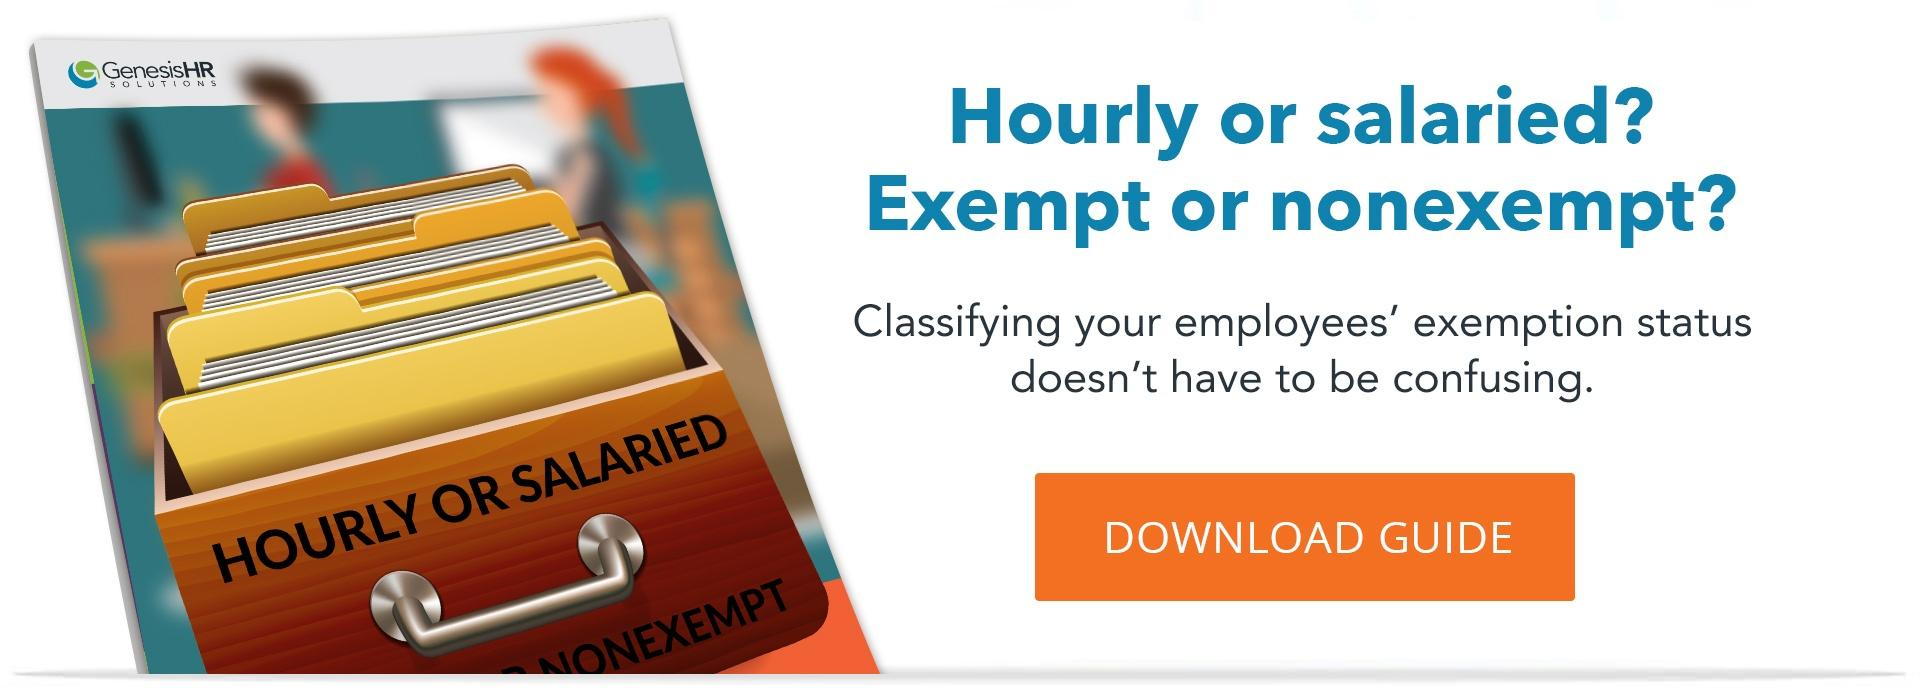 Download Hourly or salaried, exempt or nonexempt: Are you correctly classifying your employees?